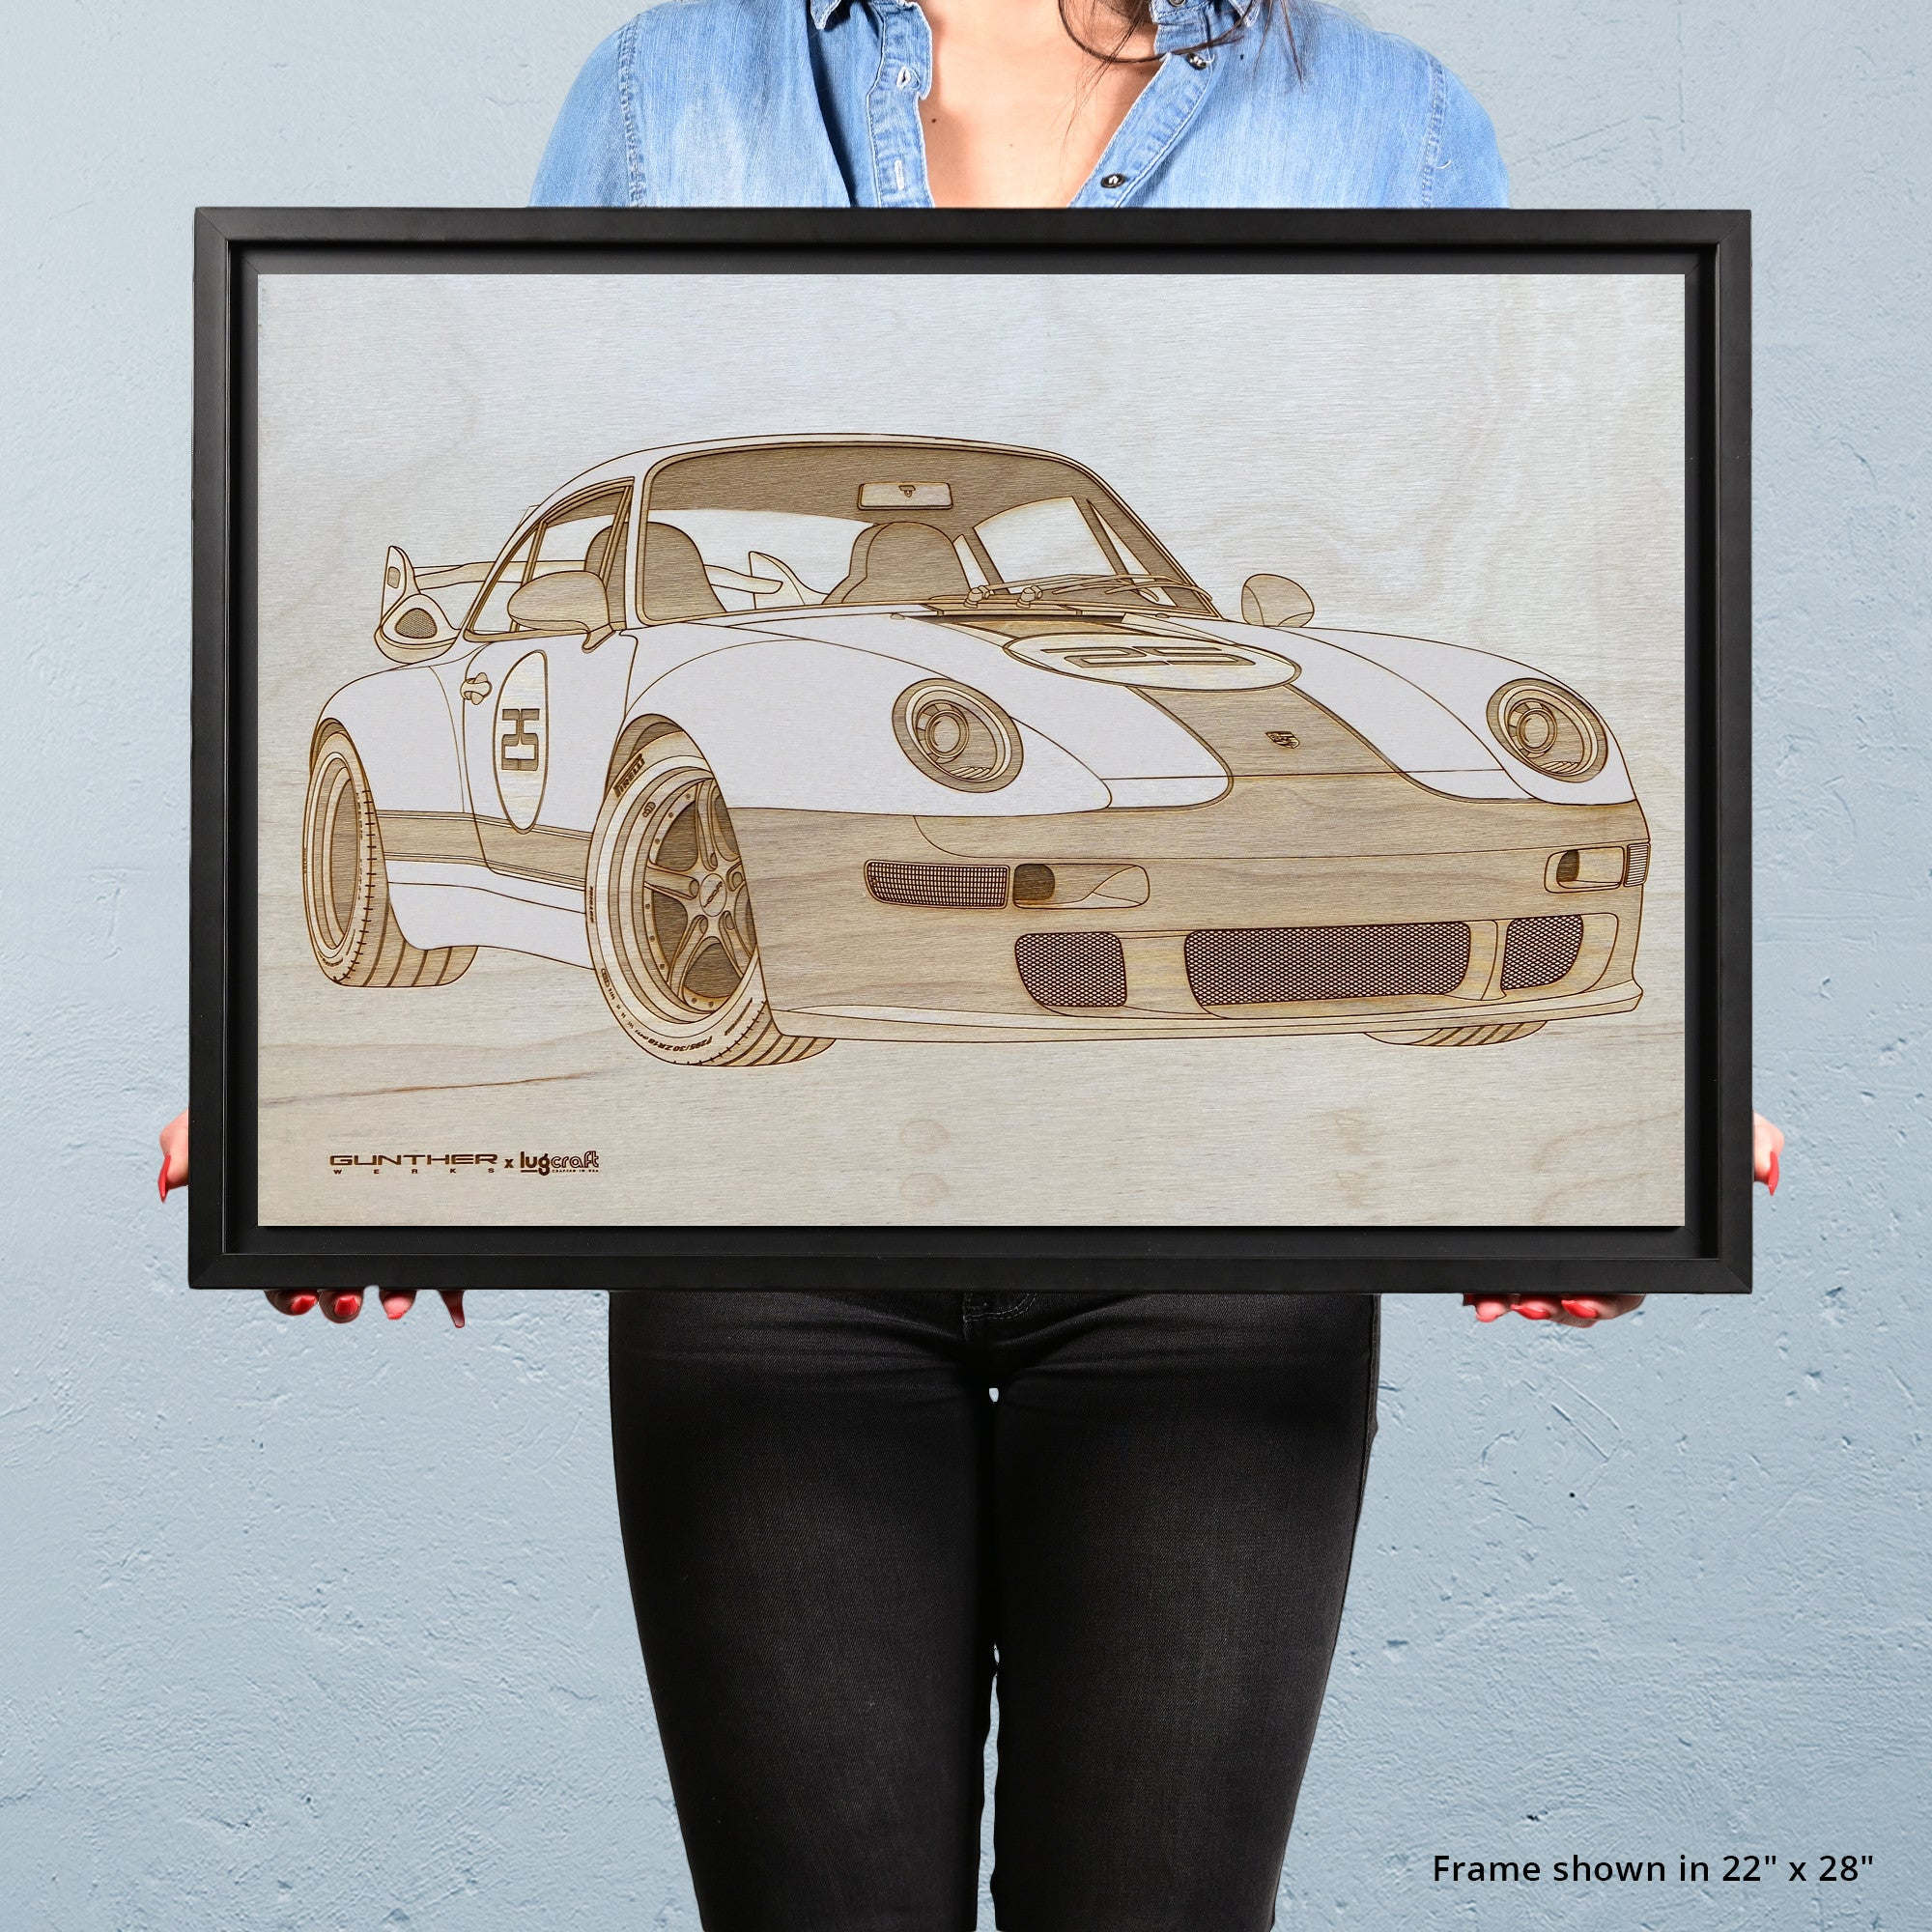 Gunther Werks 993 Gulf Framed Wood Engraved Artwork